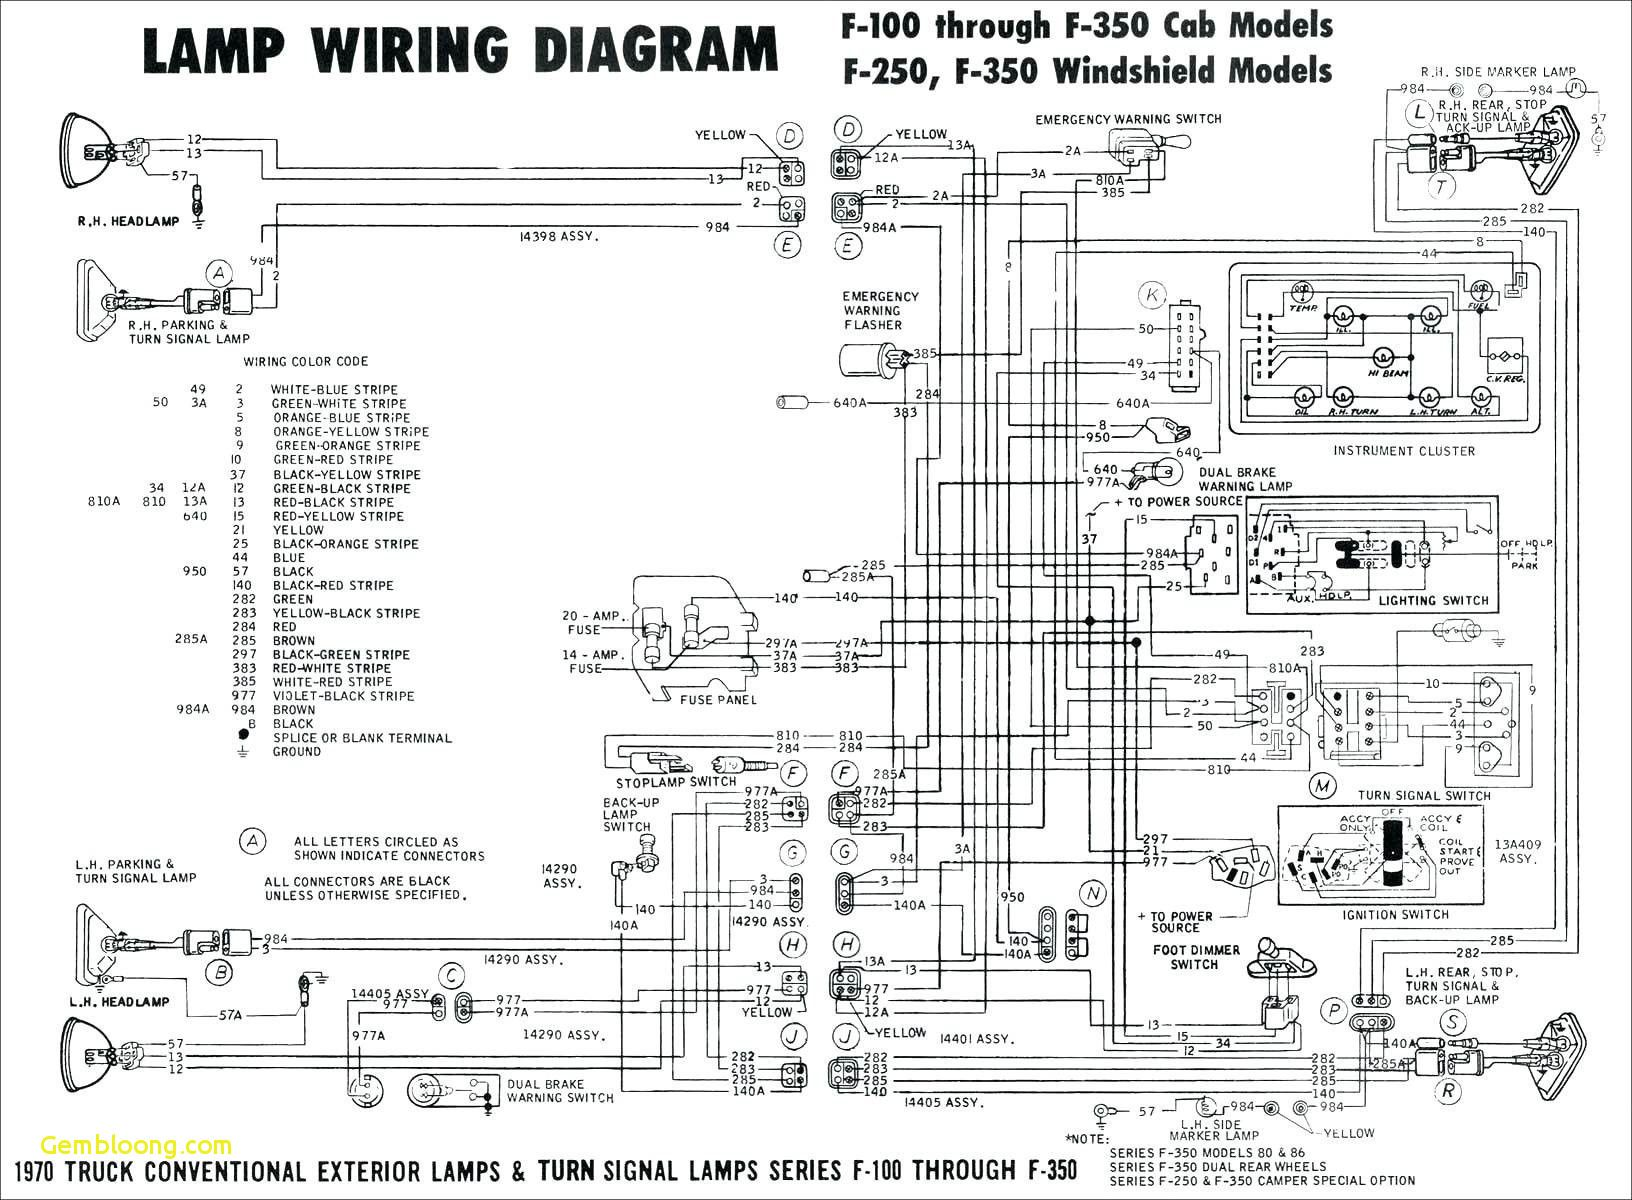 [SCHEMATICS_4US]  20 References Of Free Ford Wiring Diagrams Design | Diagram design, Electrical  wiring diagram, Electrical circuit diagram | 2000 Xplorer 4x4 Wiring Diagram Schematic |  | Pinterest